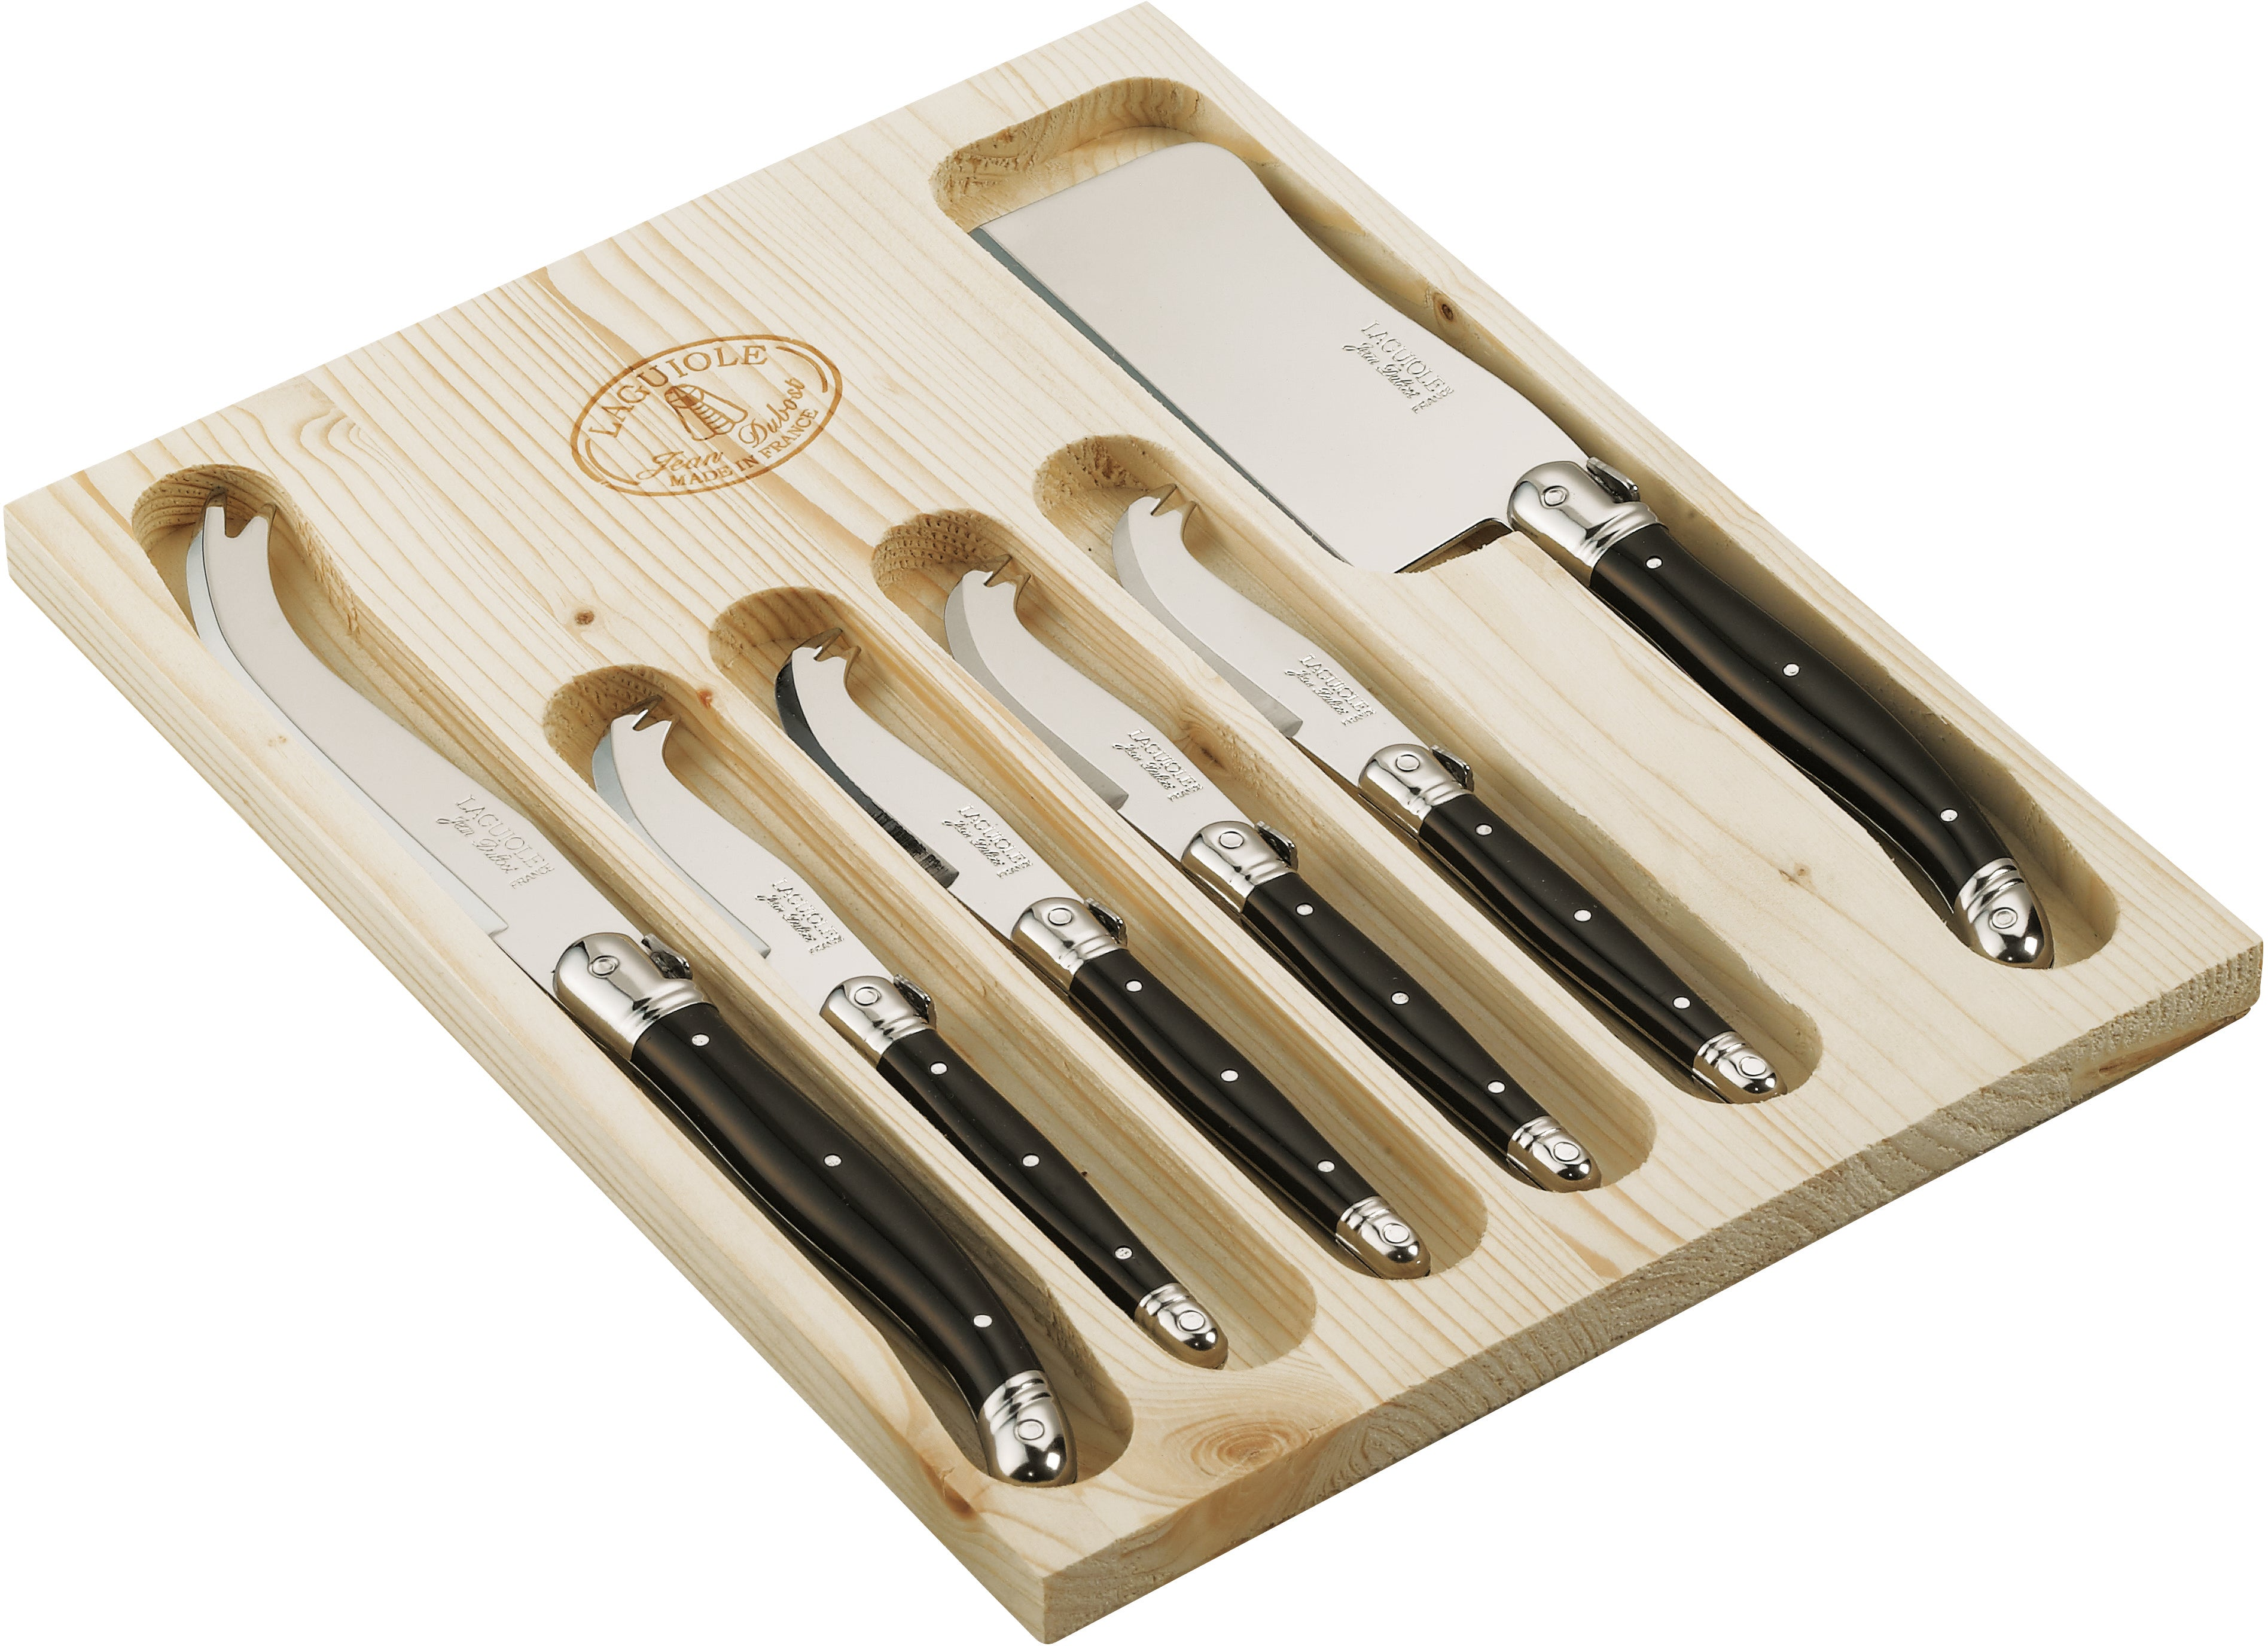 Laguiole Cheese Knife Set 6 Piece